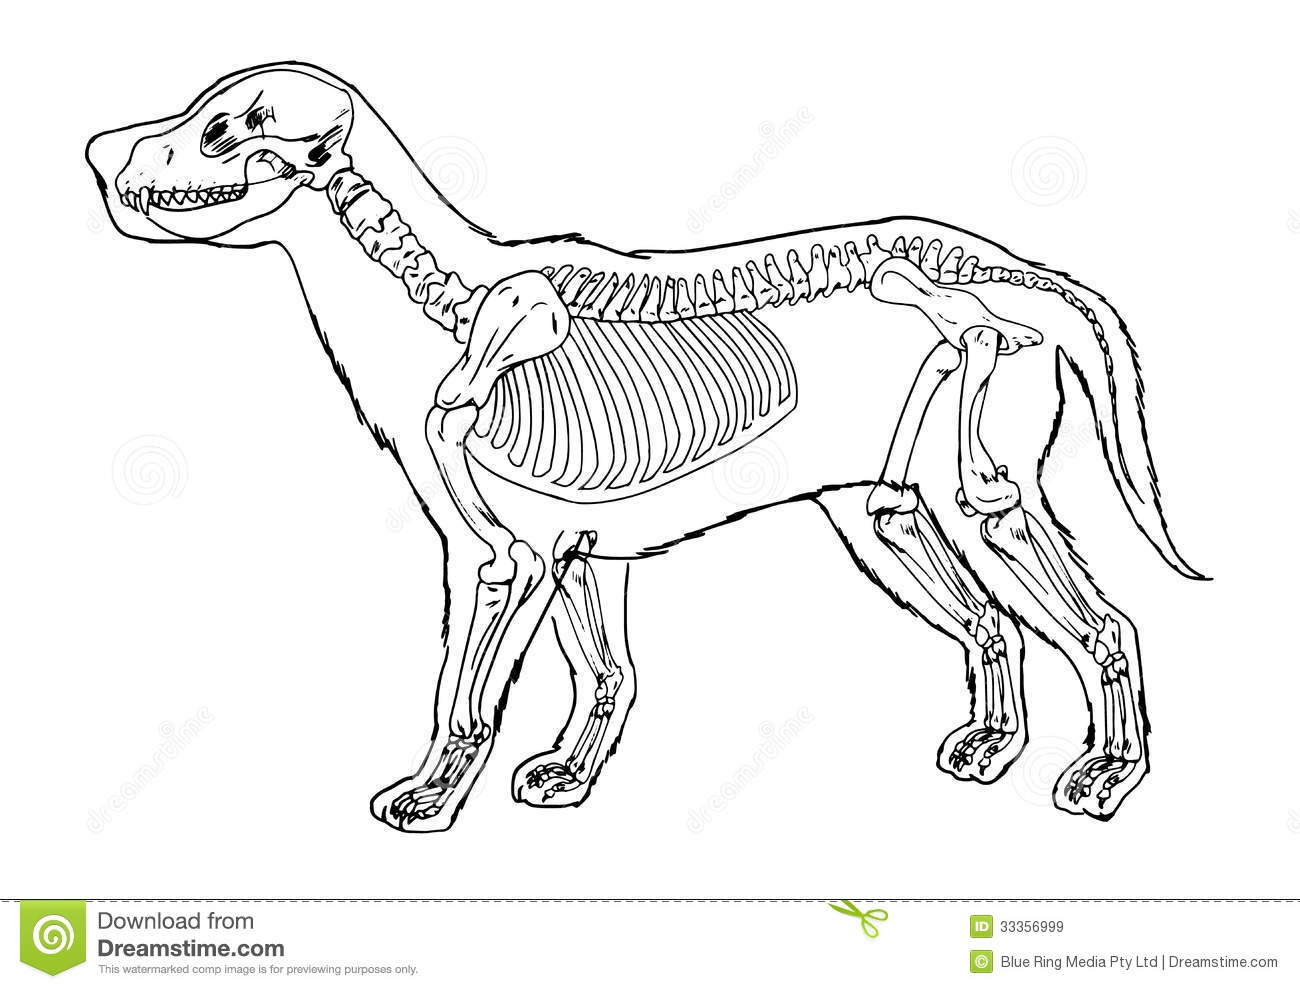 Outstanding Skeletal System Of A Dog Collection - Human Anatomy ...